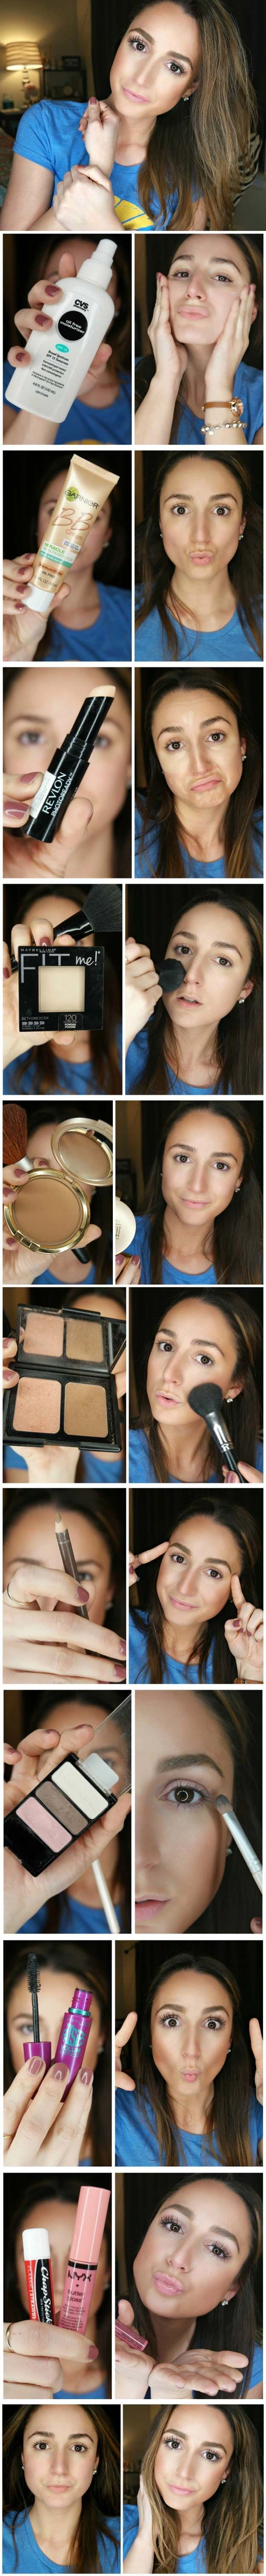 Best Makeup Tutorials For Teens 5 Minute Everyday Makeup Routine  Easy  Makeup Ideas For